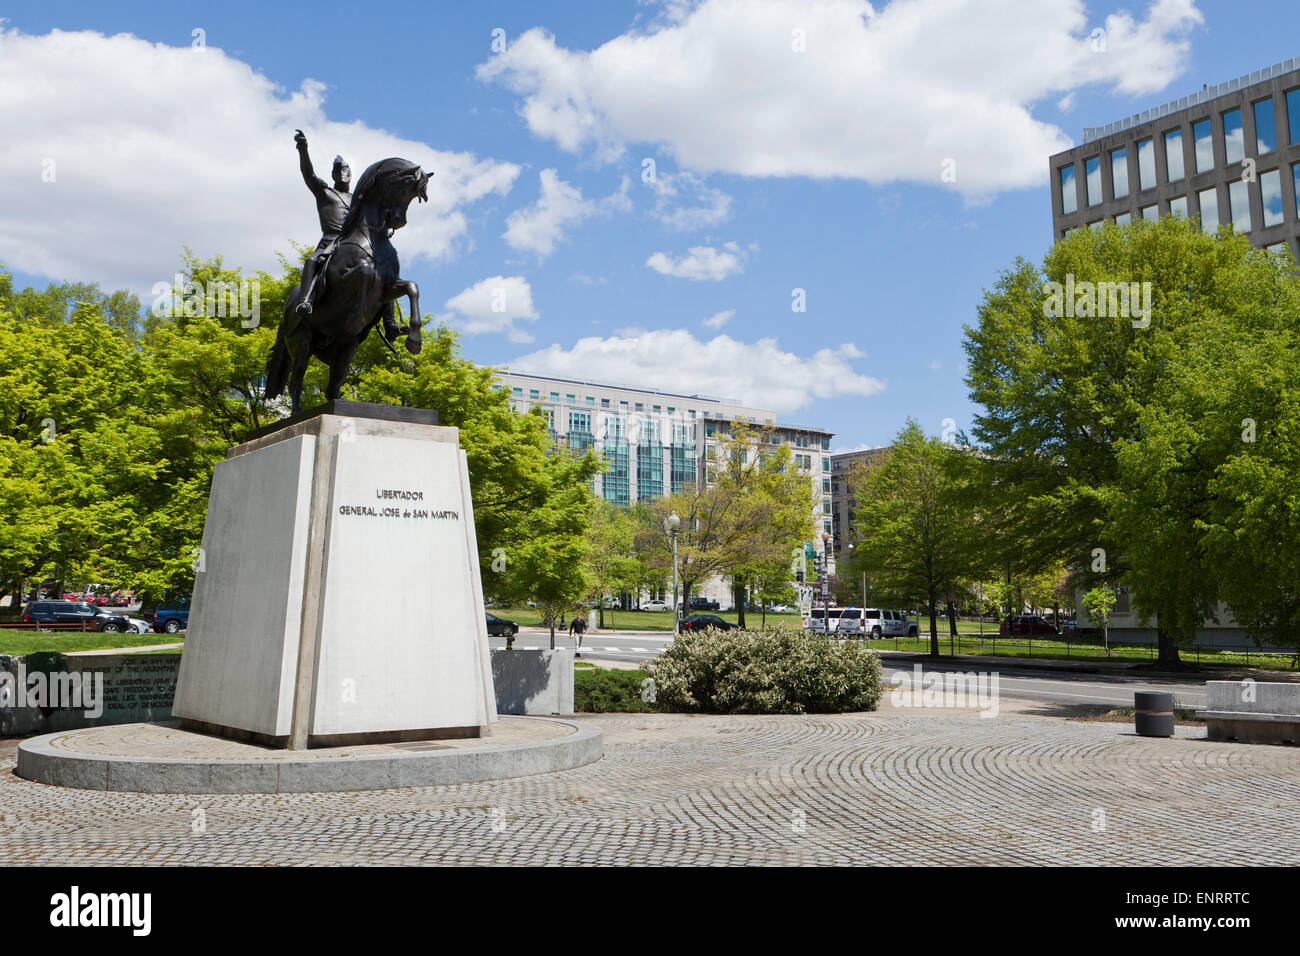 Libertador General Jose de San Martin memorial equestrian statue - Washington, DC USA - Stock Image